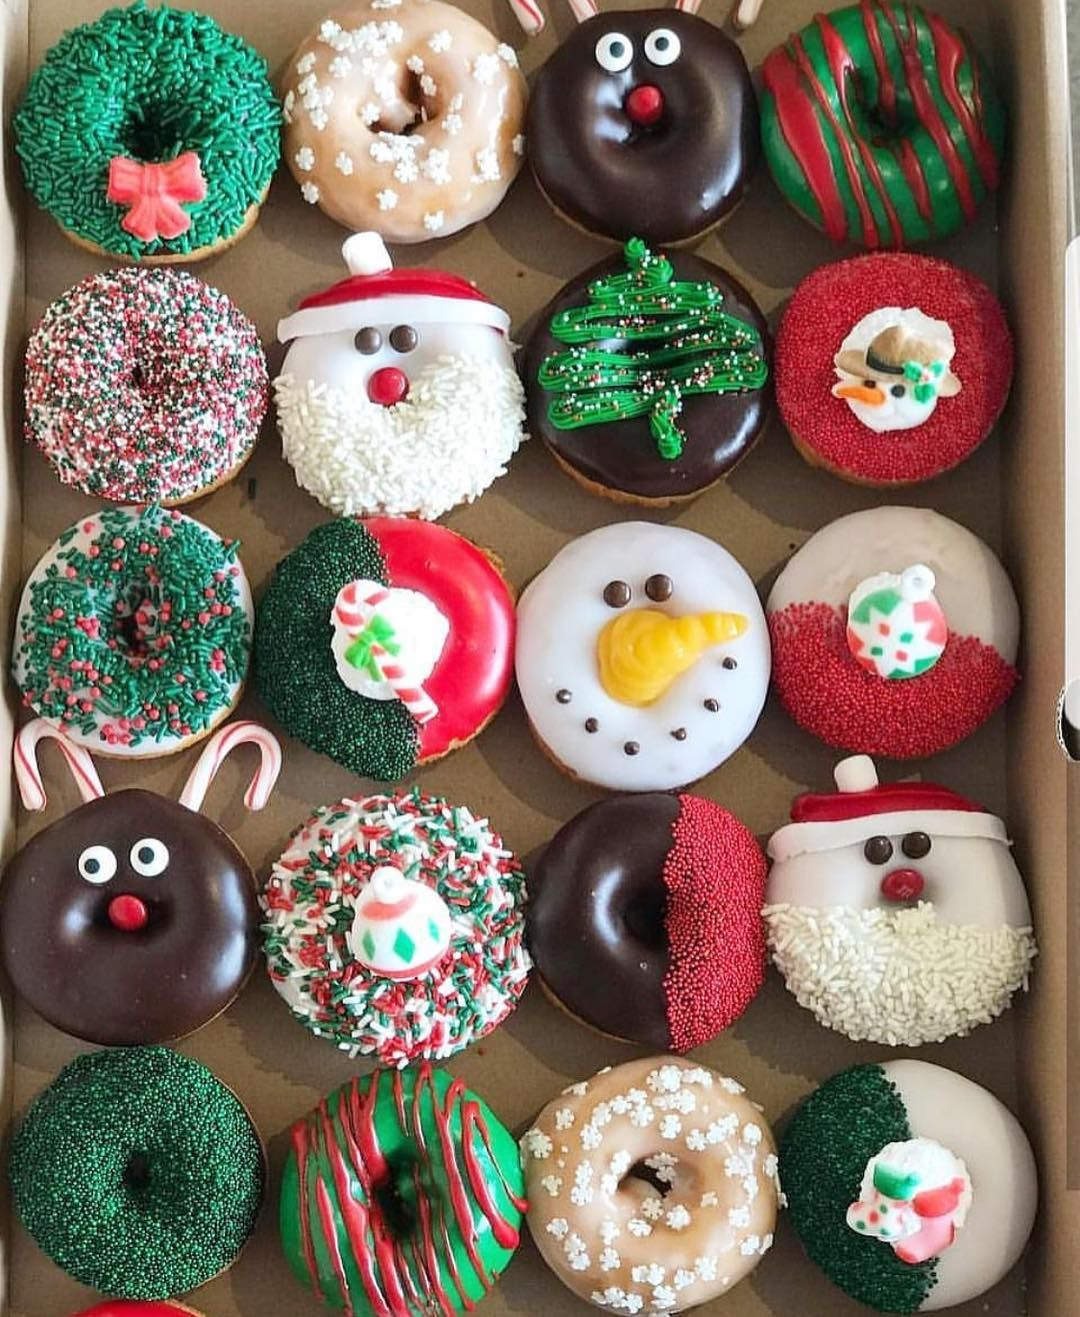 Christmas Donuts Christmas Decorations Christmas Crafts Christmas Gifts Christmas Tree Ideas Christmas Wr Christmas Donuts Christmas Chocolate Delicious Donuts